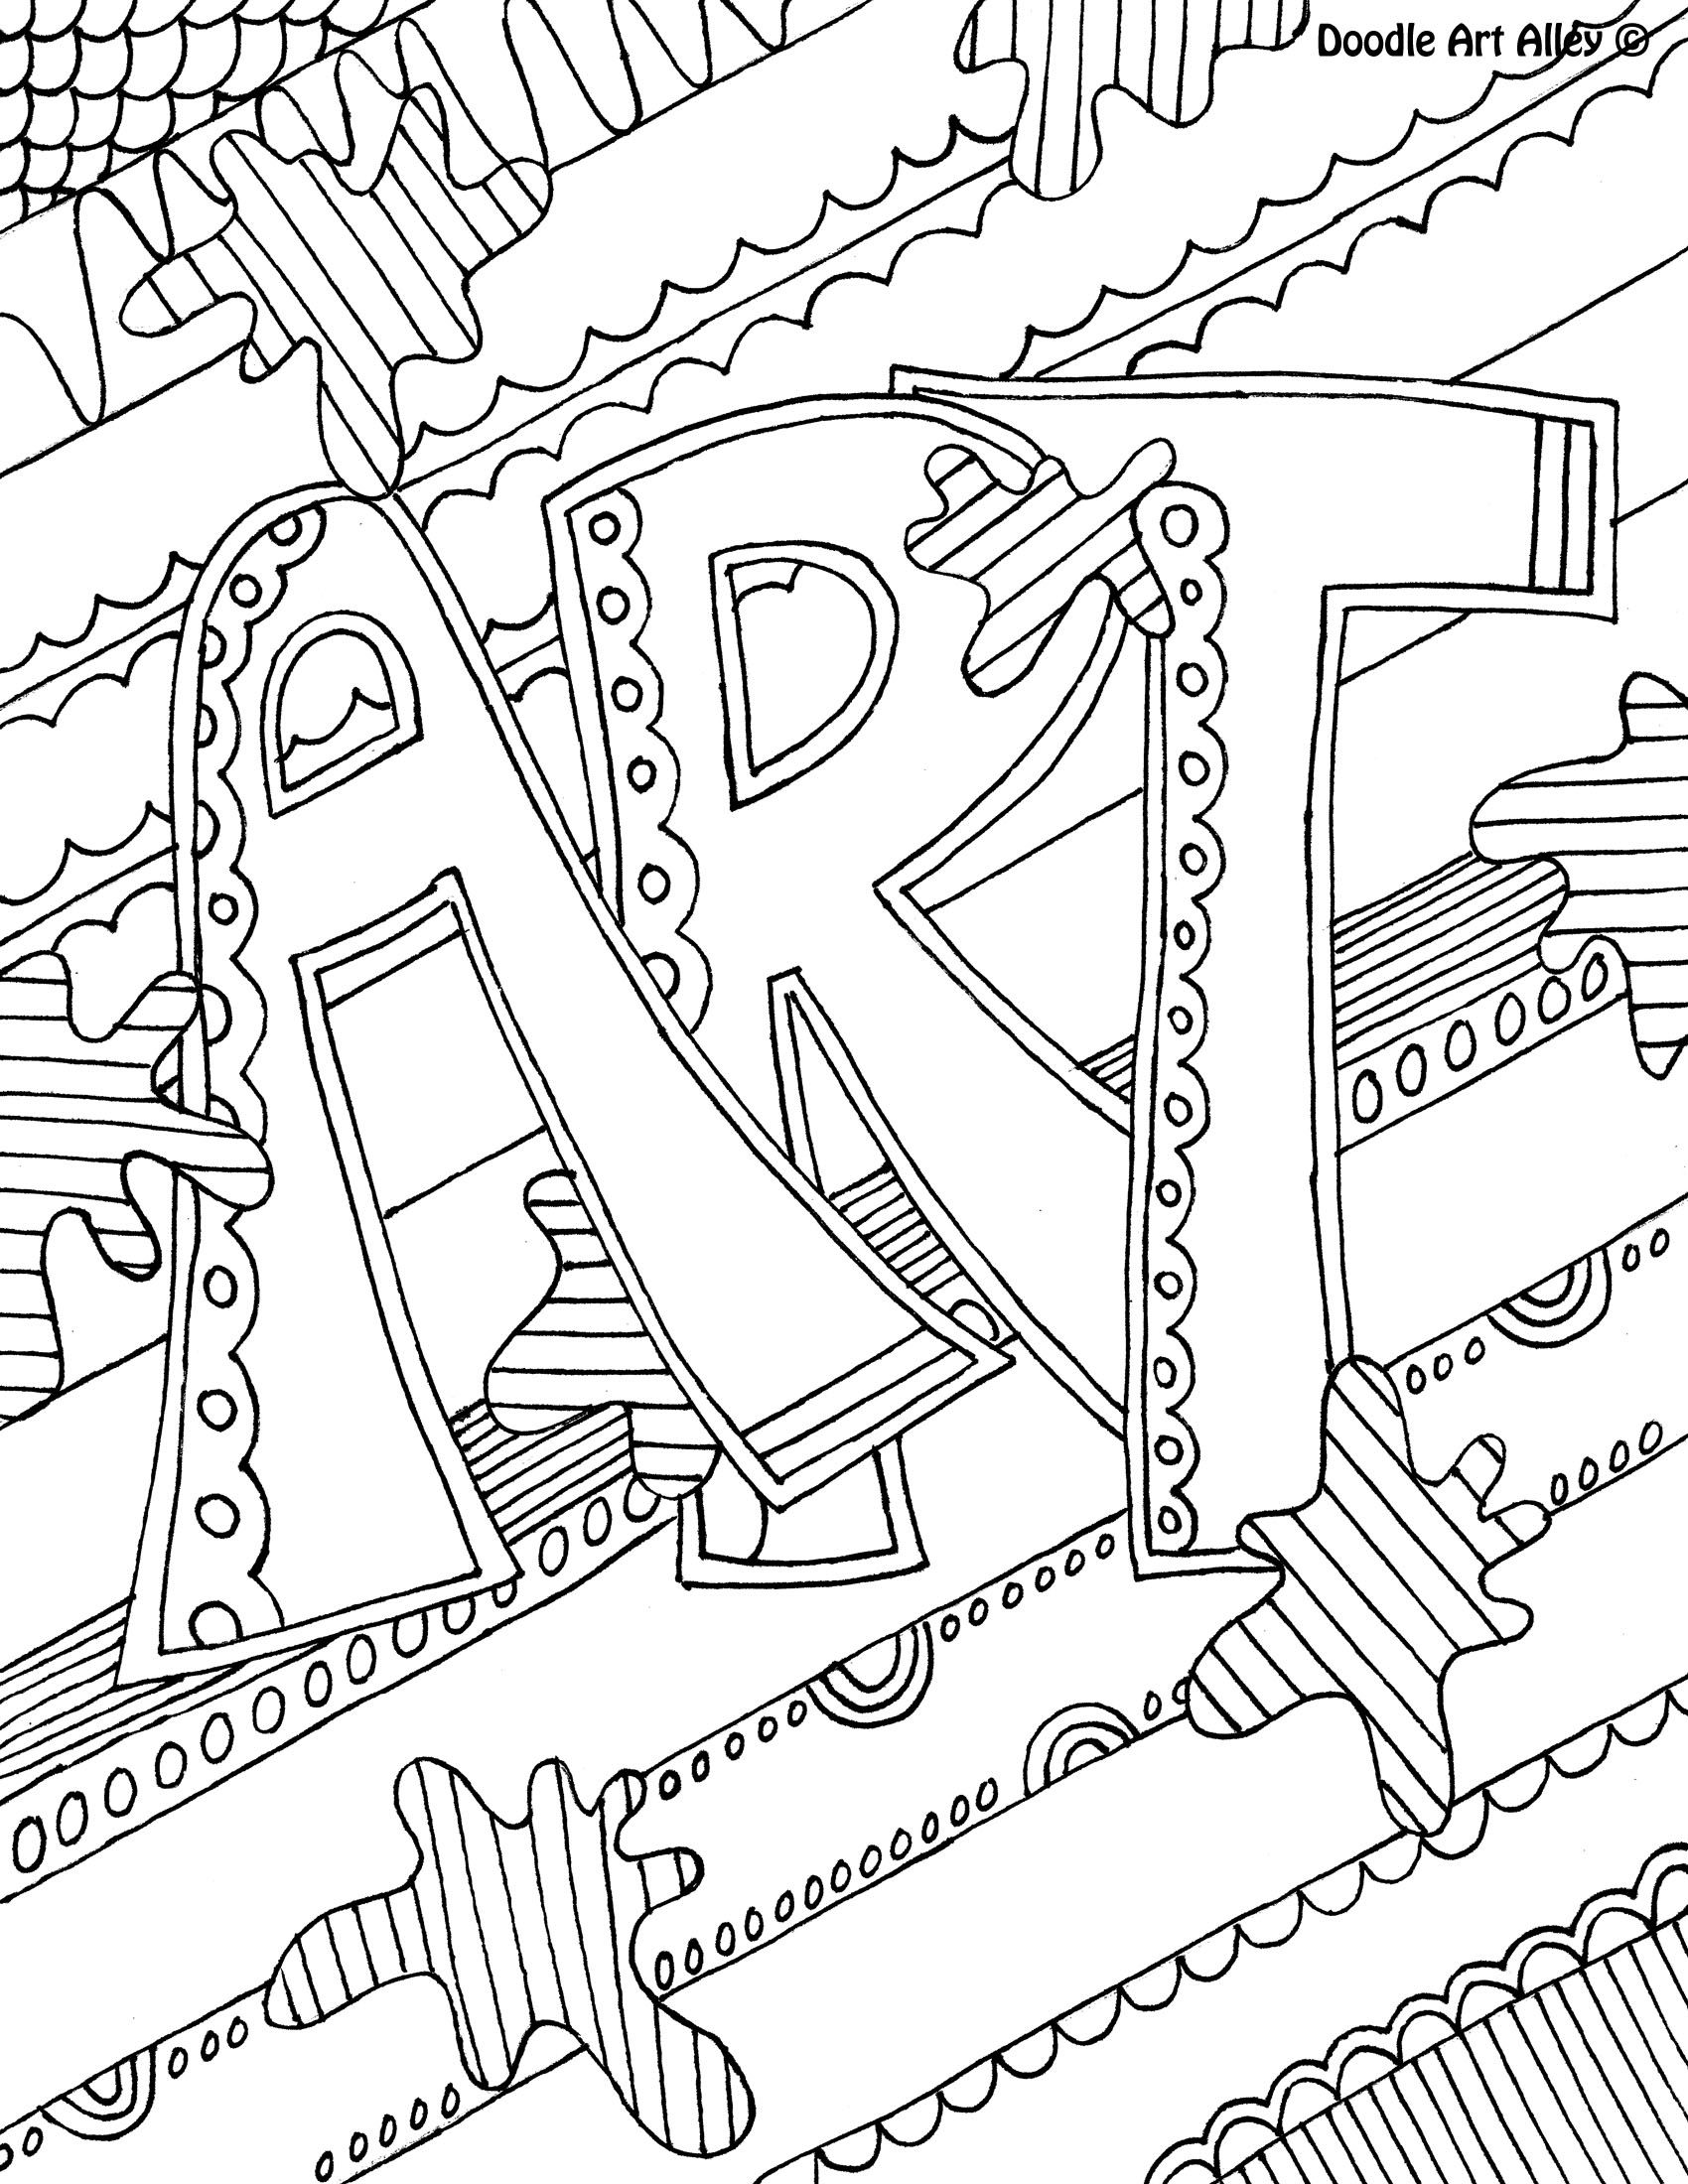 coloring book doodle art alley coloring pages pinterest